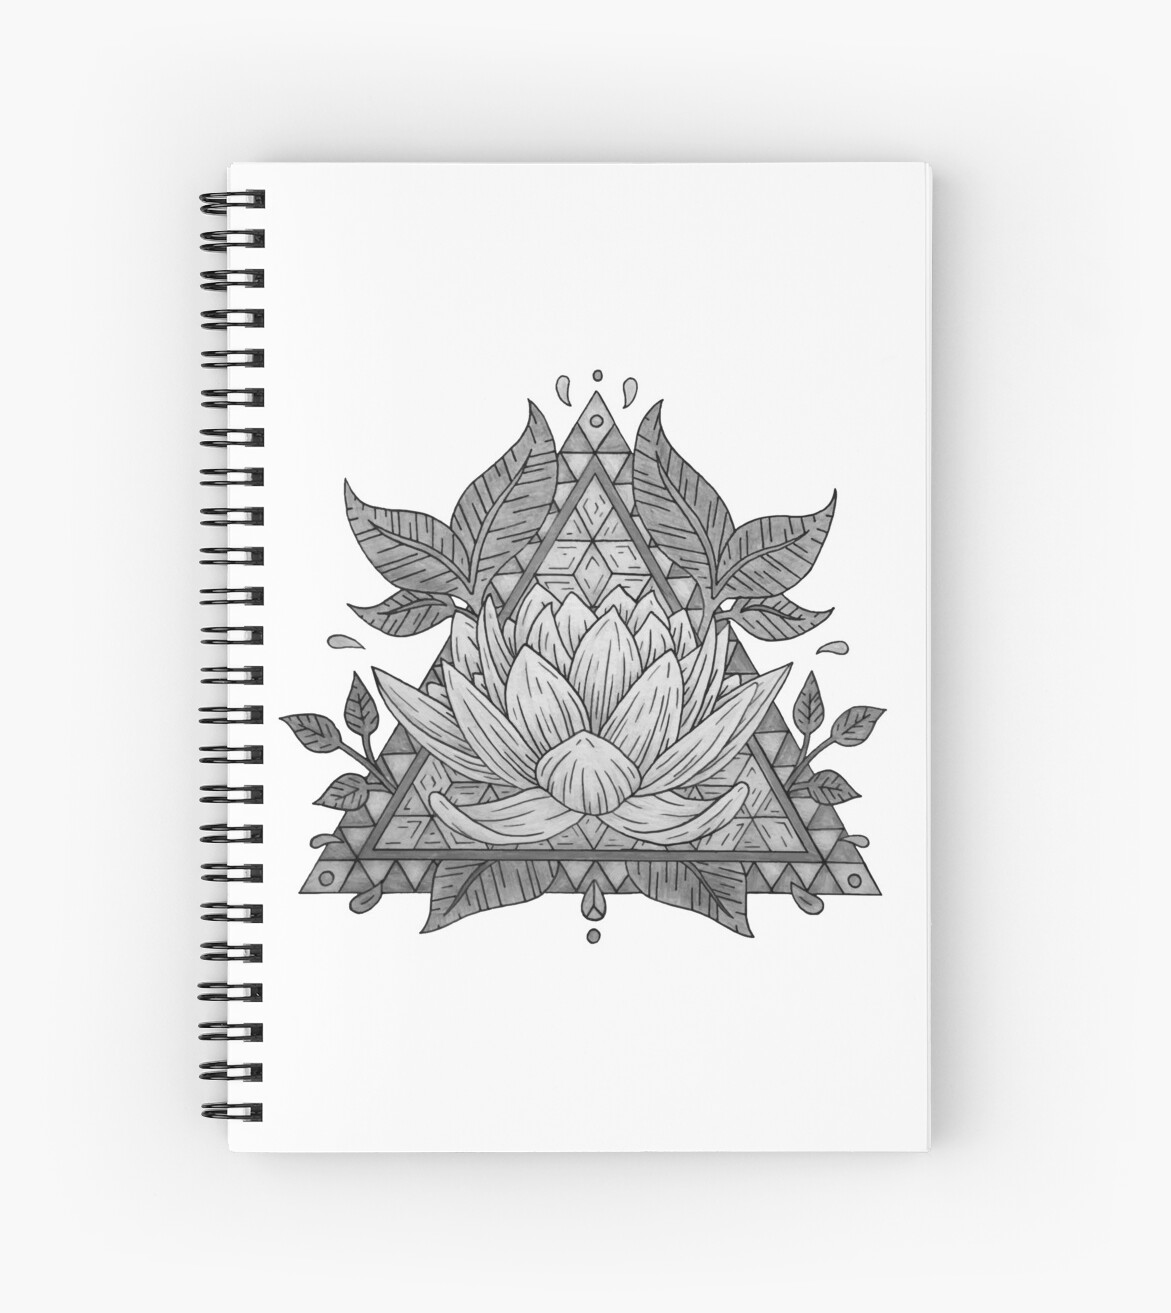 Grey Lotus Flower Geometric Design Spiral Notebooks By Bblane